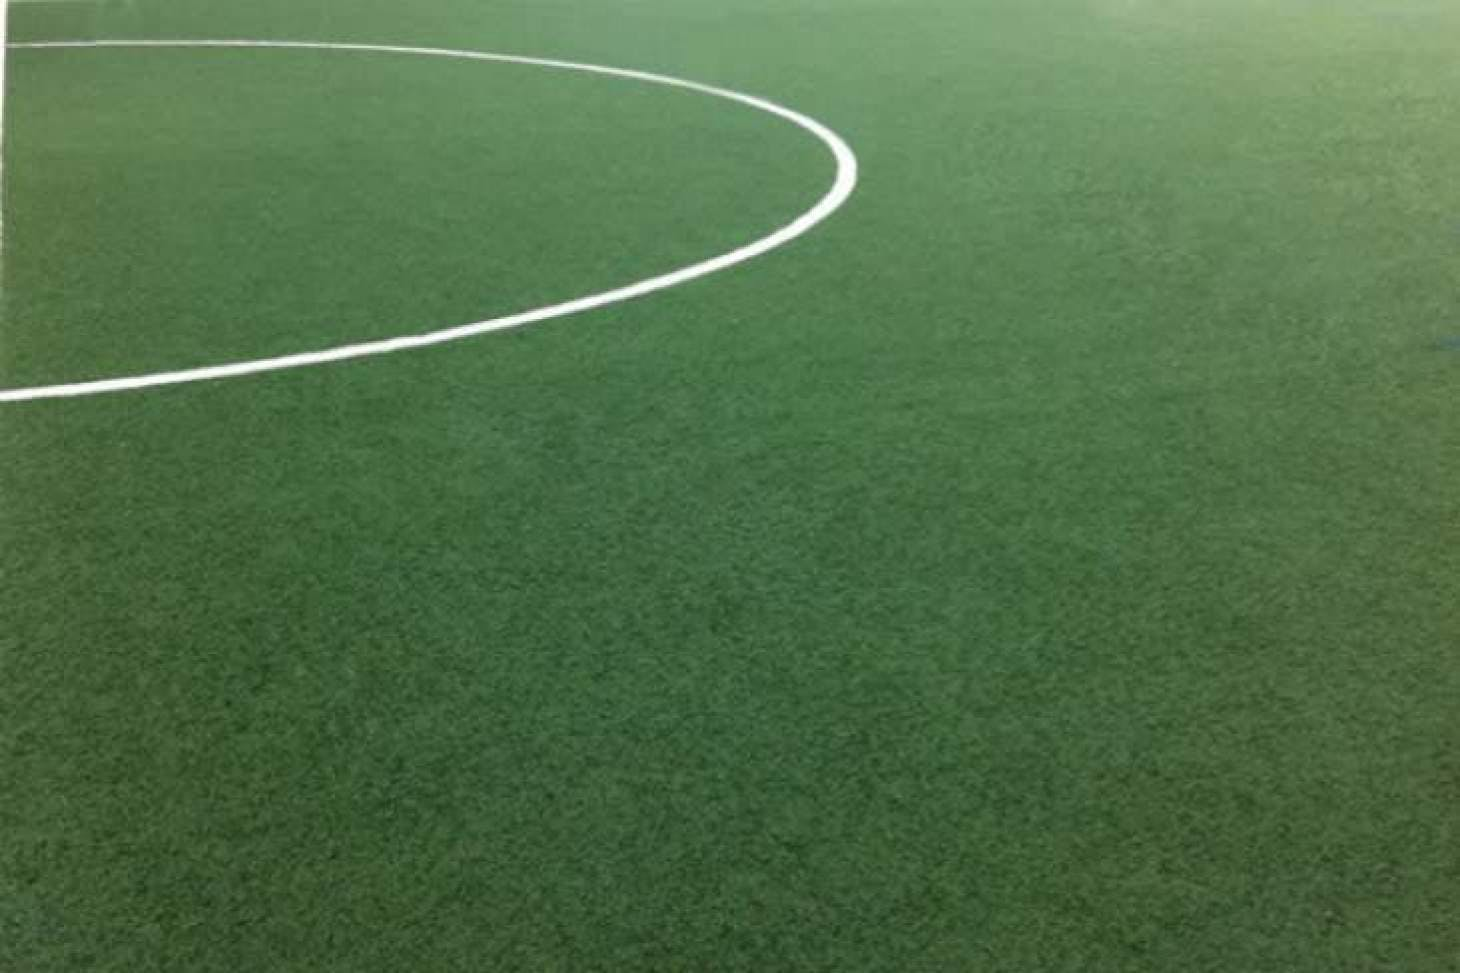 South Manchester Sports Club 5 a side | Astroturf football pitch